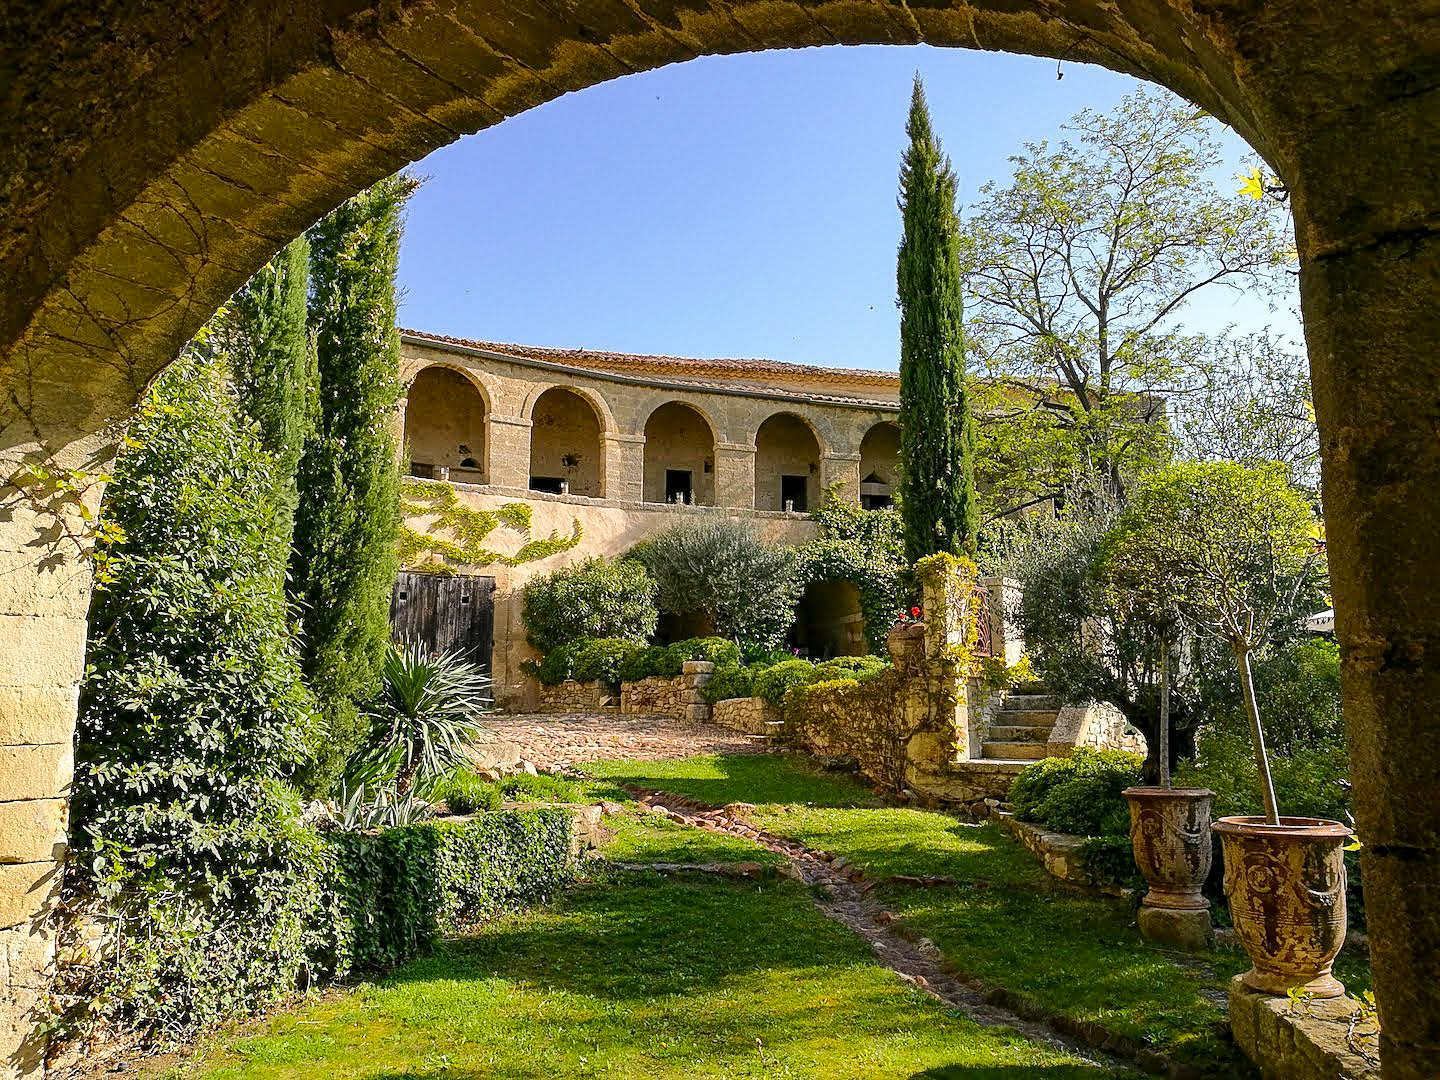 2205 : Uzès close by, gracious and elegant 17th century Bastide, previous ducal hunting lodge  with its gardens and bassin…